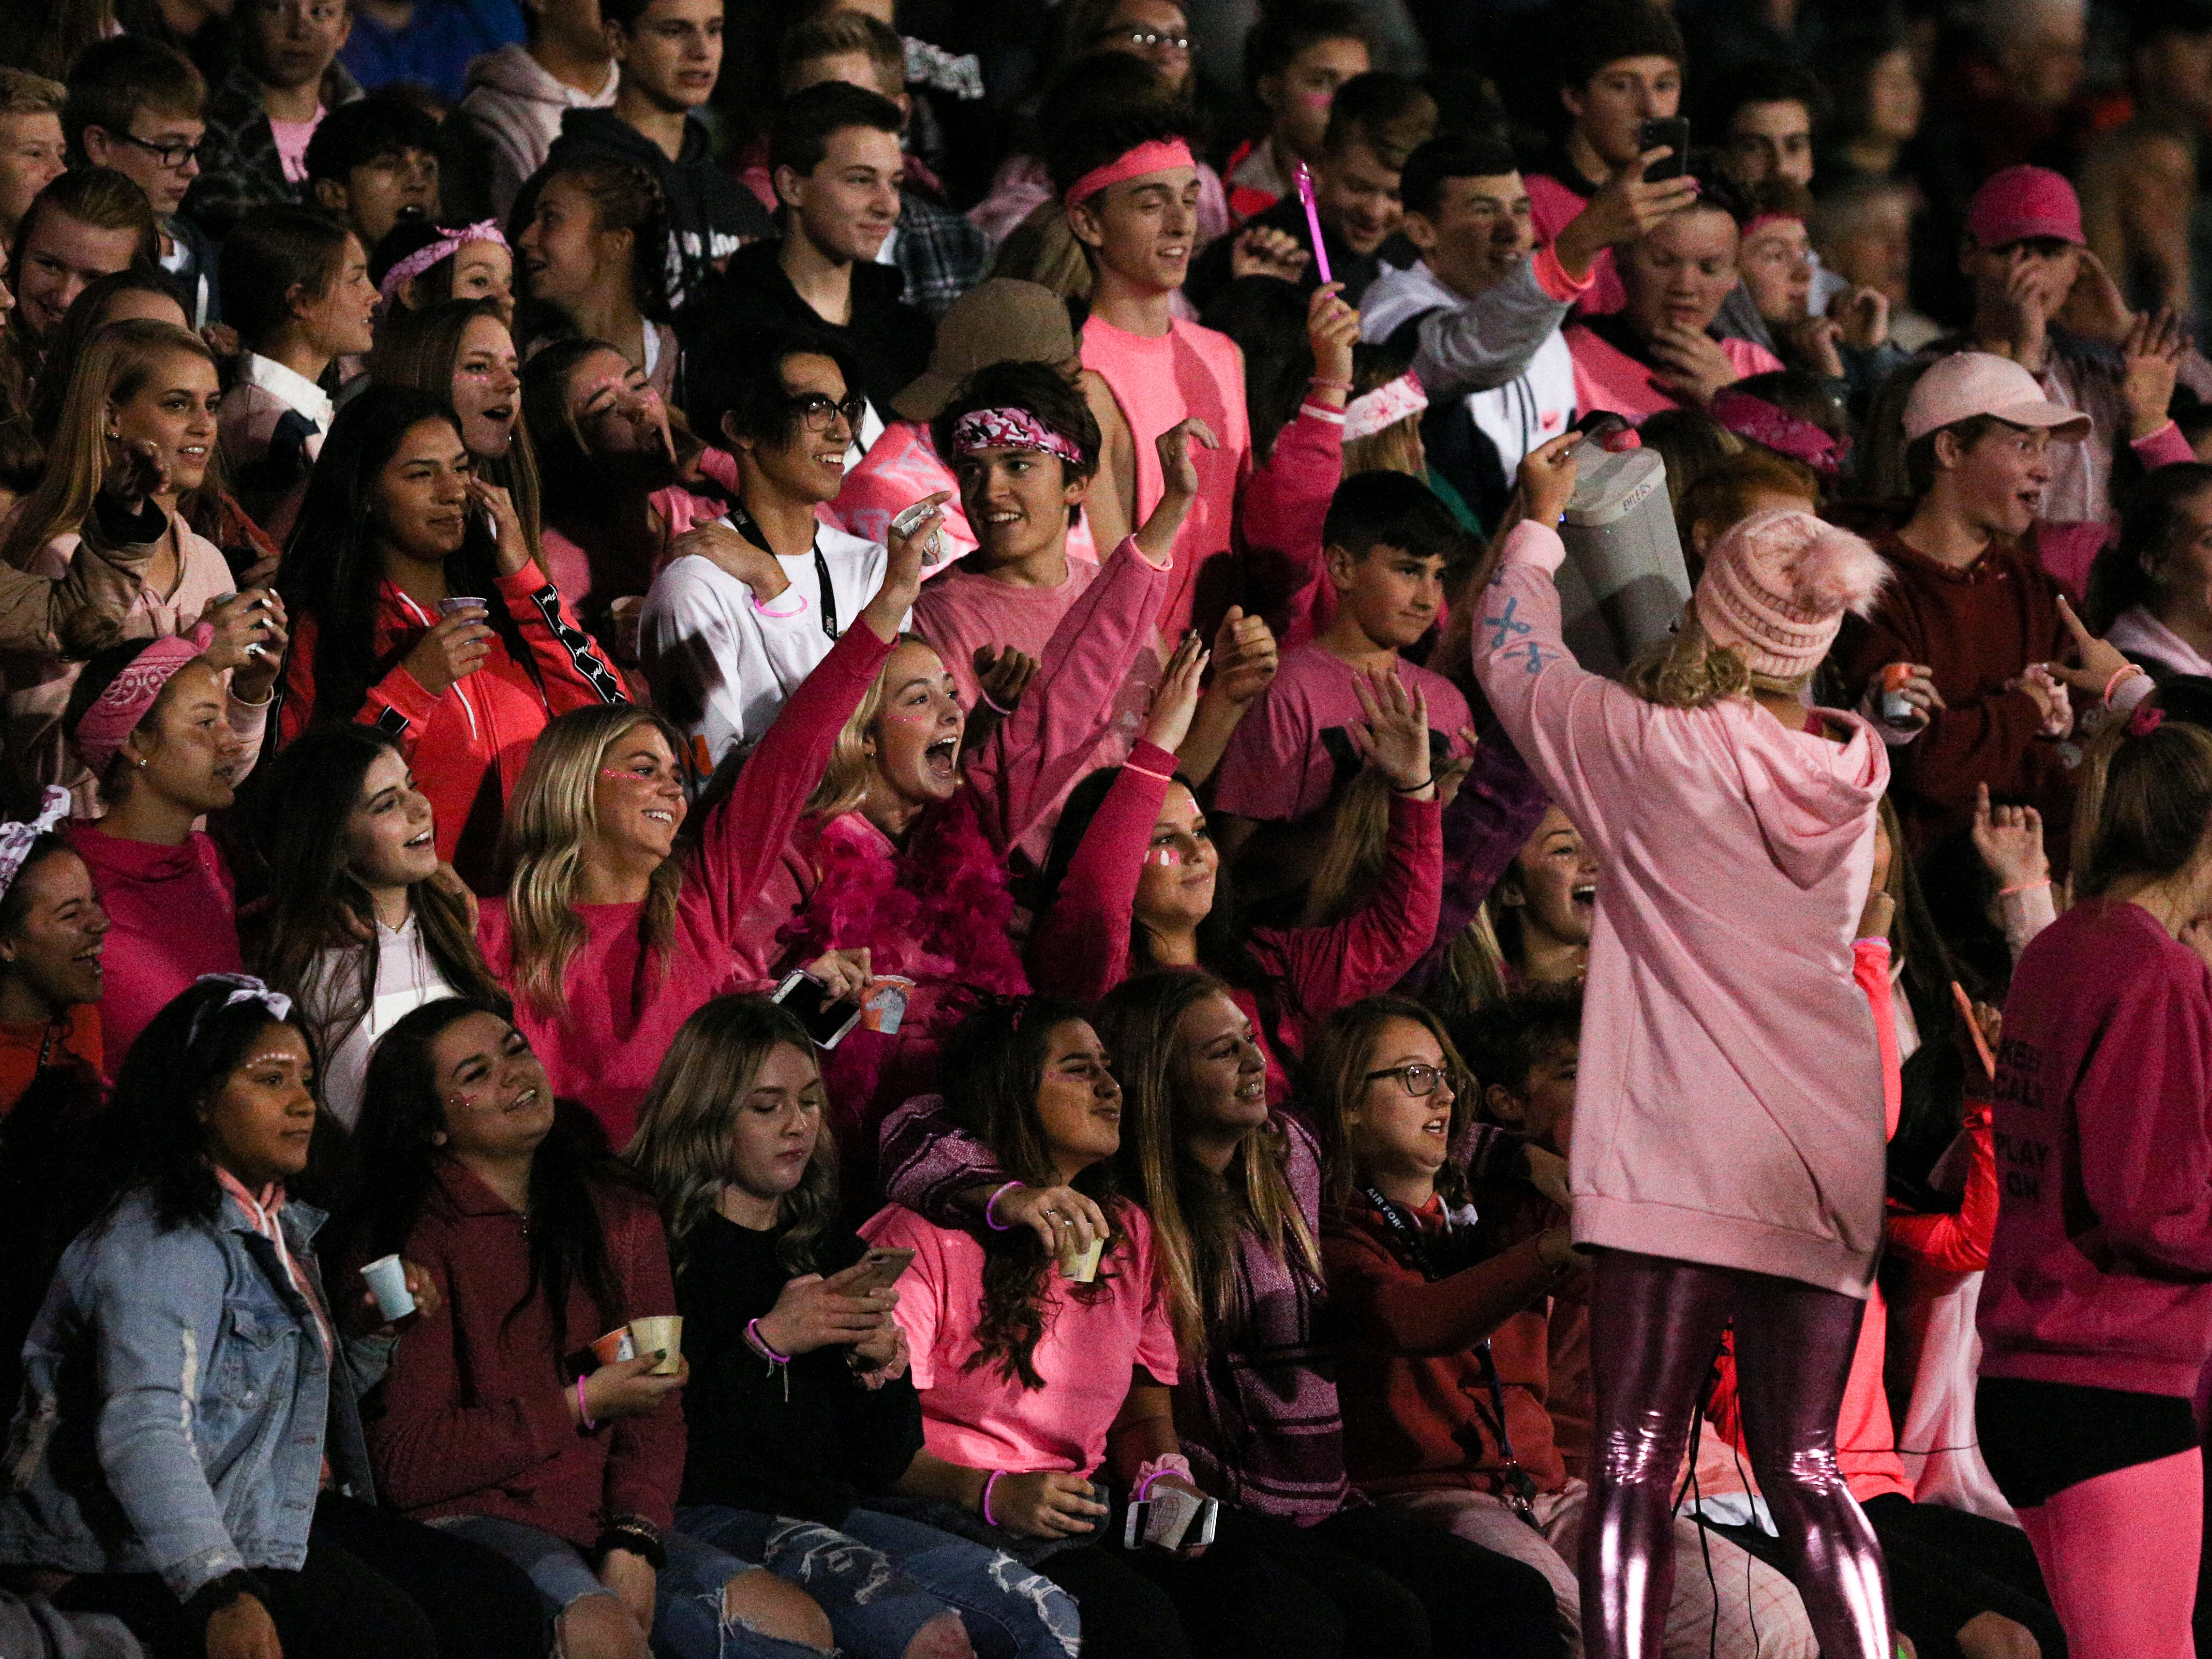 West Salem's student section cheers on their team, dressed in pink for Breast Cancer Awareness month, during the first half of the McNary vs. West Salem football game at West Salem High School on Friday, Oct. 19.